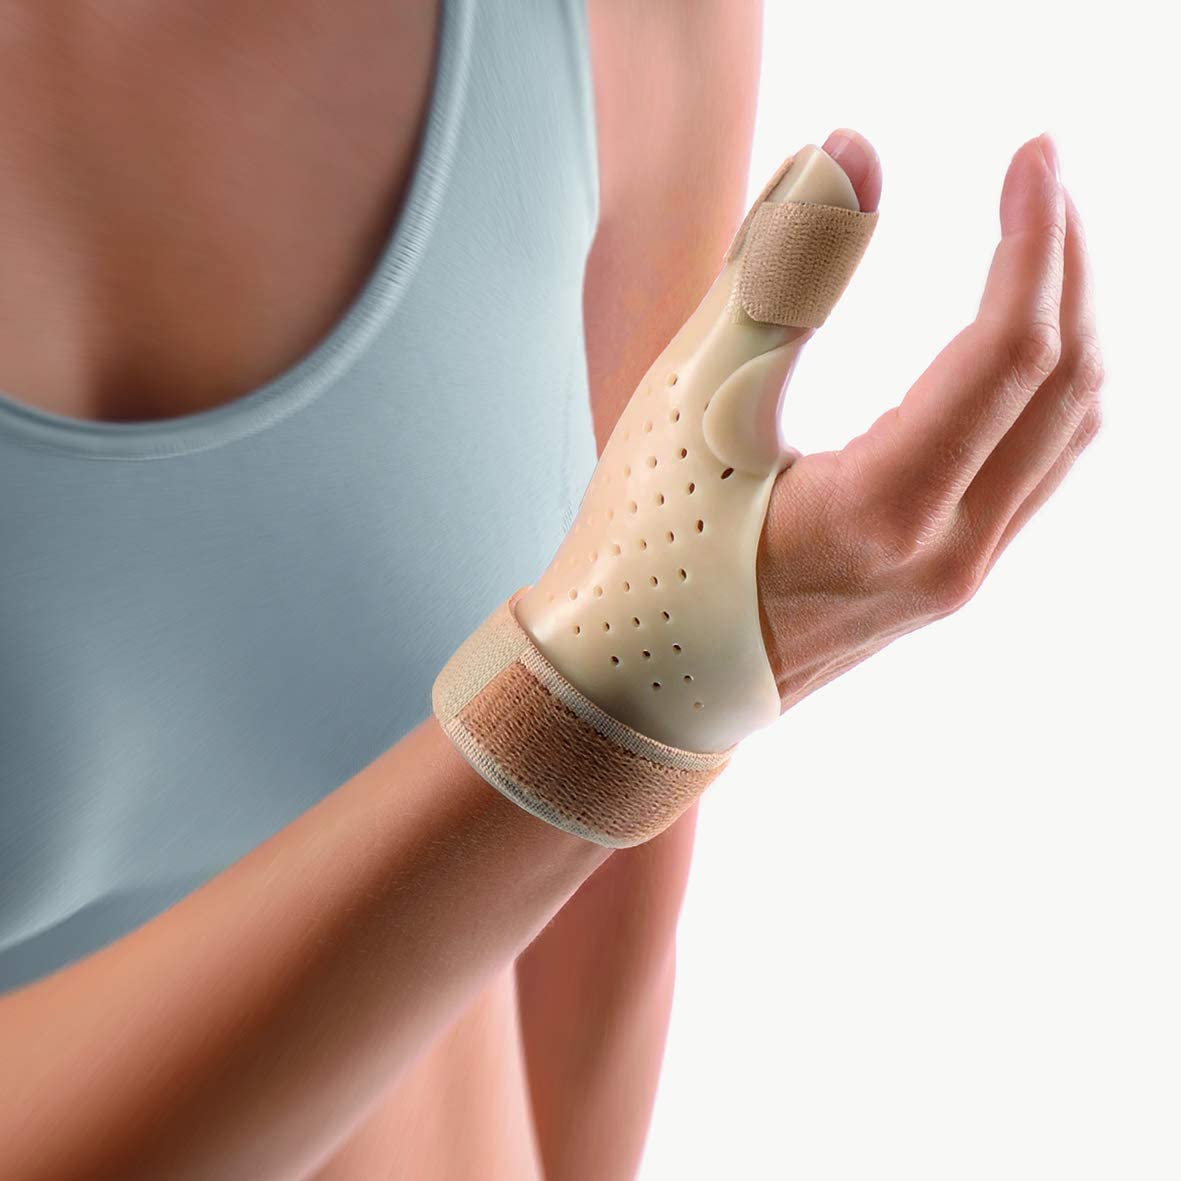 "B0041M4O8W Bort 112900 SELLAFIX® P Quervain's Tenosynovitis Brace for Thumb Tendon, Trigger Thumb Heat Adjustable Medical Grade Made in Germany (Beige, Small, Left 5.9"" – 6.7"" inches) 61jLnMMGkrL.SL1181_"